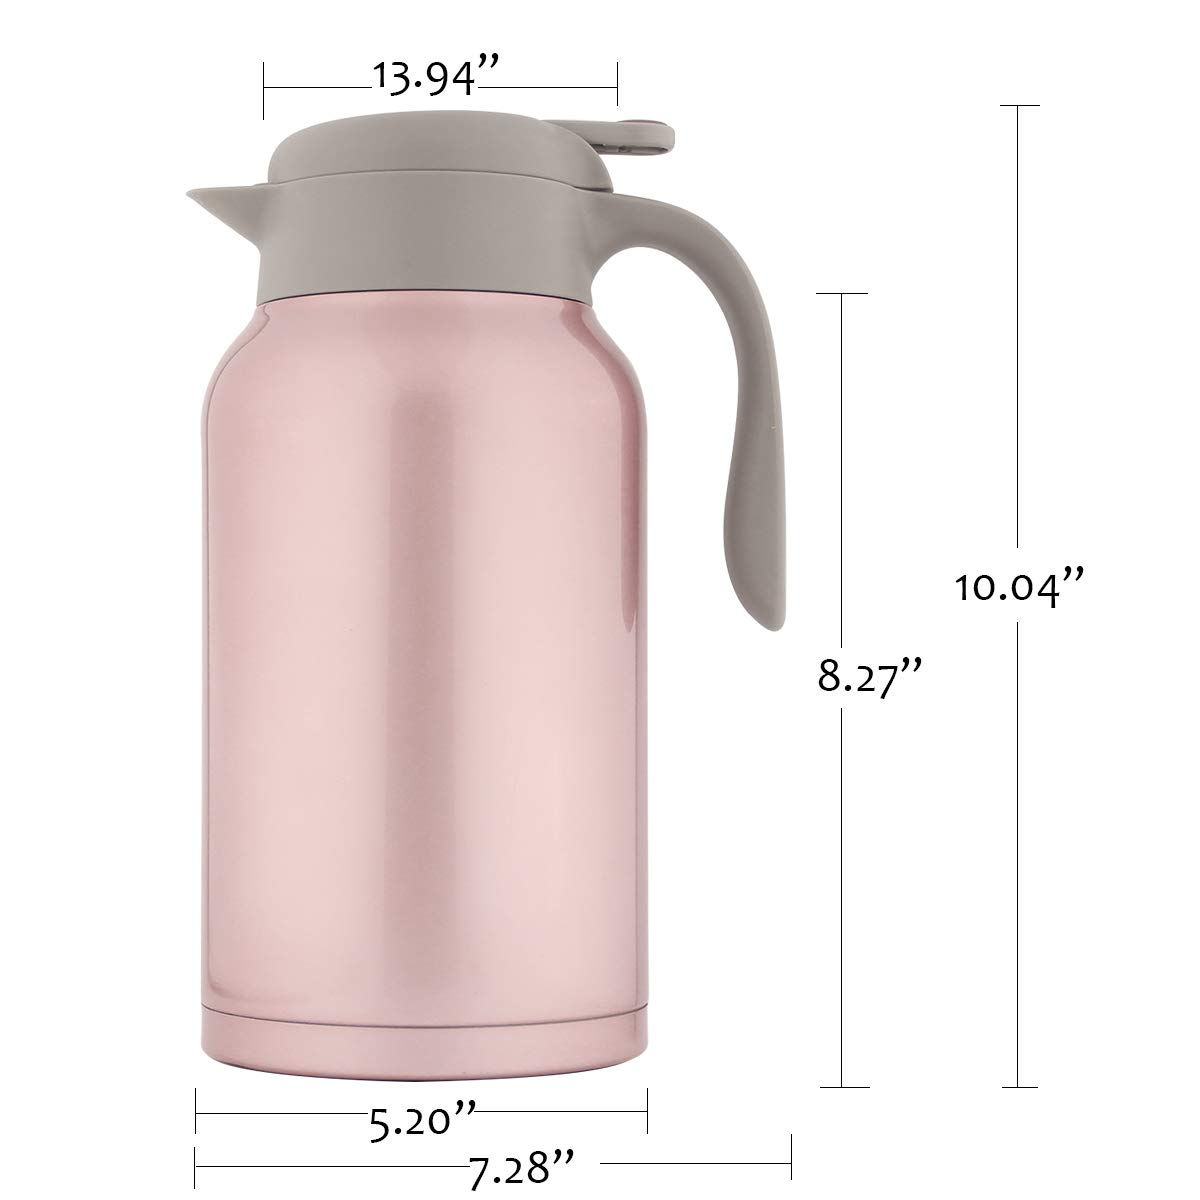 SDREAM 68 Oz Coffee Carafe Thermal Stainless Steel Double Walled Thermal Pots Hot Cold Beverage (Pink) by SDREAM (Image #5)